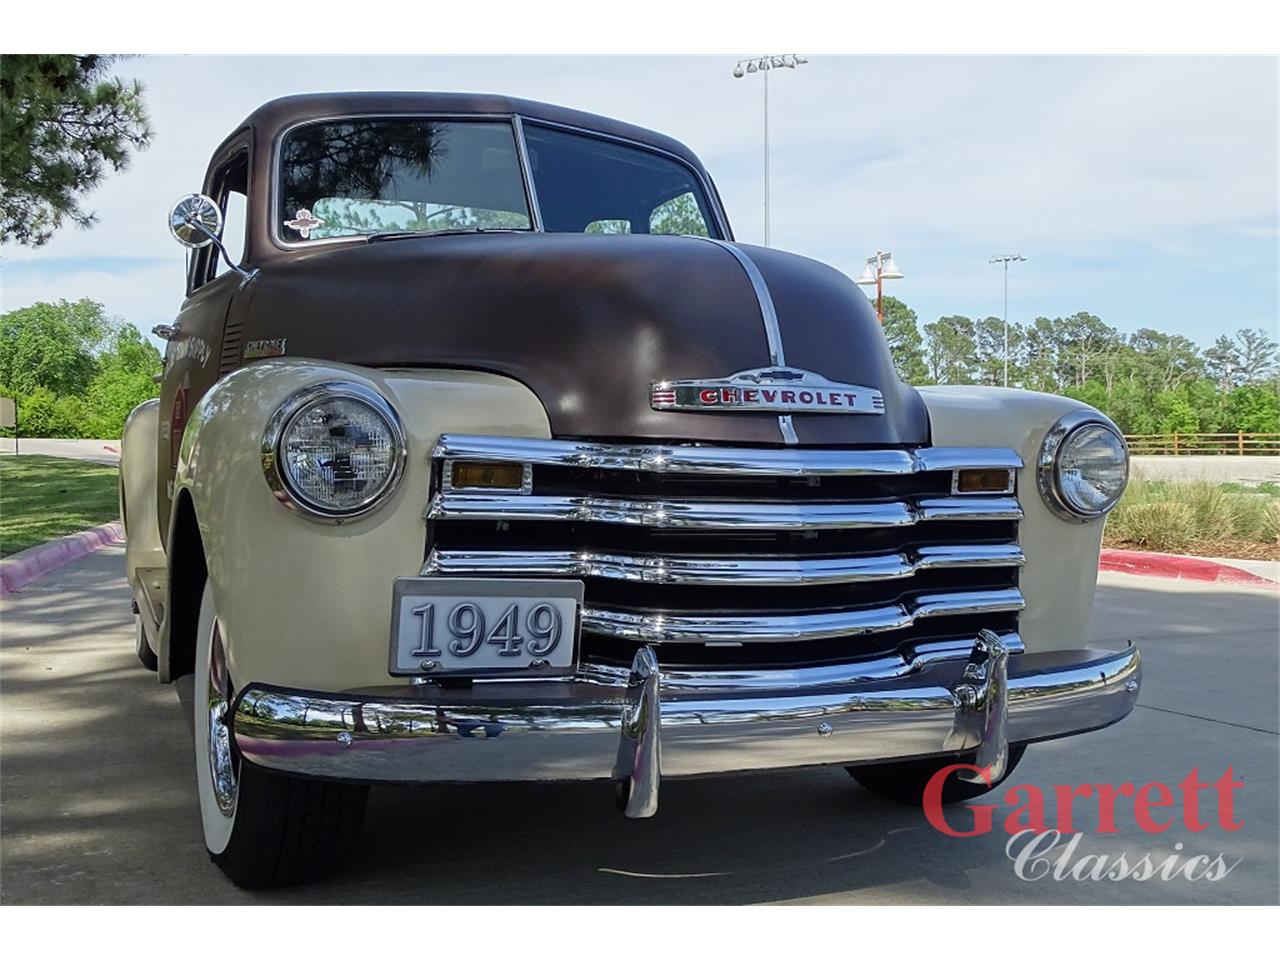 Large Picture of Classic 1949 Chevrolet 3100 located in TEXAS (TX) Offered by Garrett Classics - PXAC